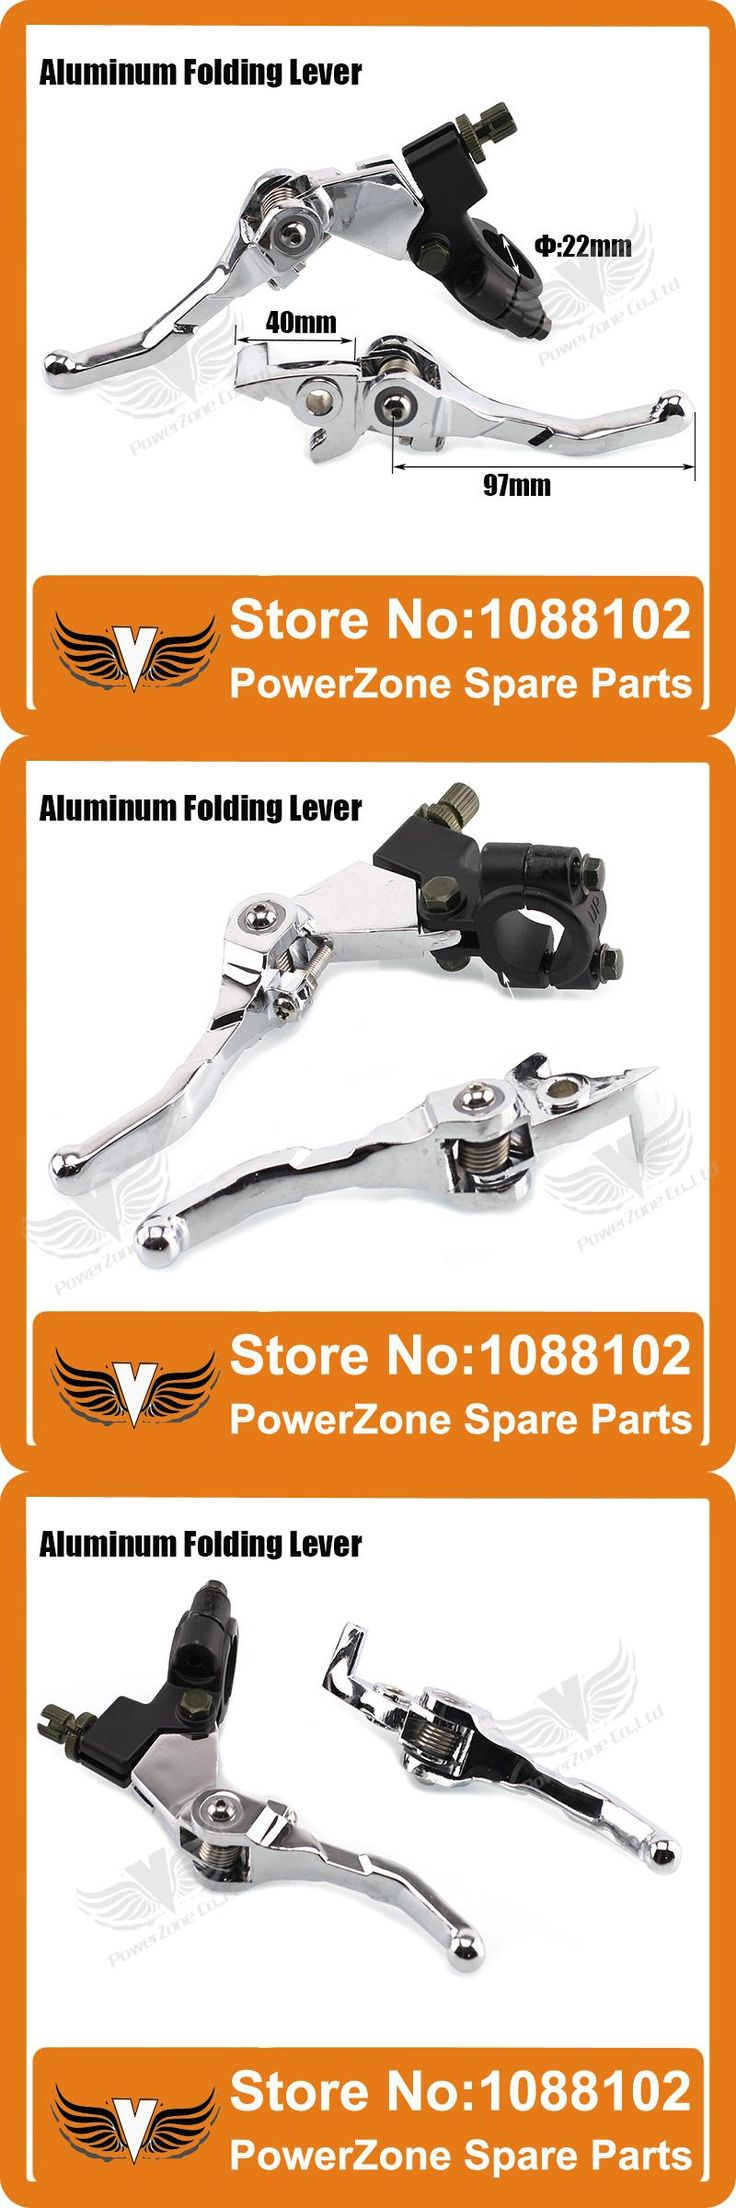 [Visit to Buy] Aluminum Folding Clutch lever Brake Lever Fit CRF IRBIS Apollo Xmotos KAYO  BSE Pit Dirt Bike Parts Free Shipping! #Advertisement